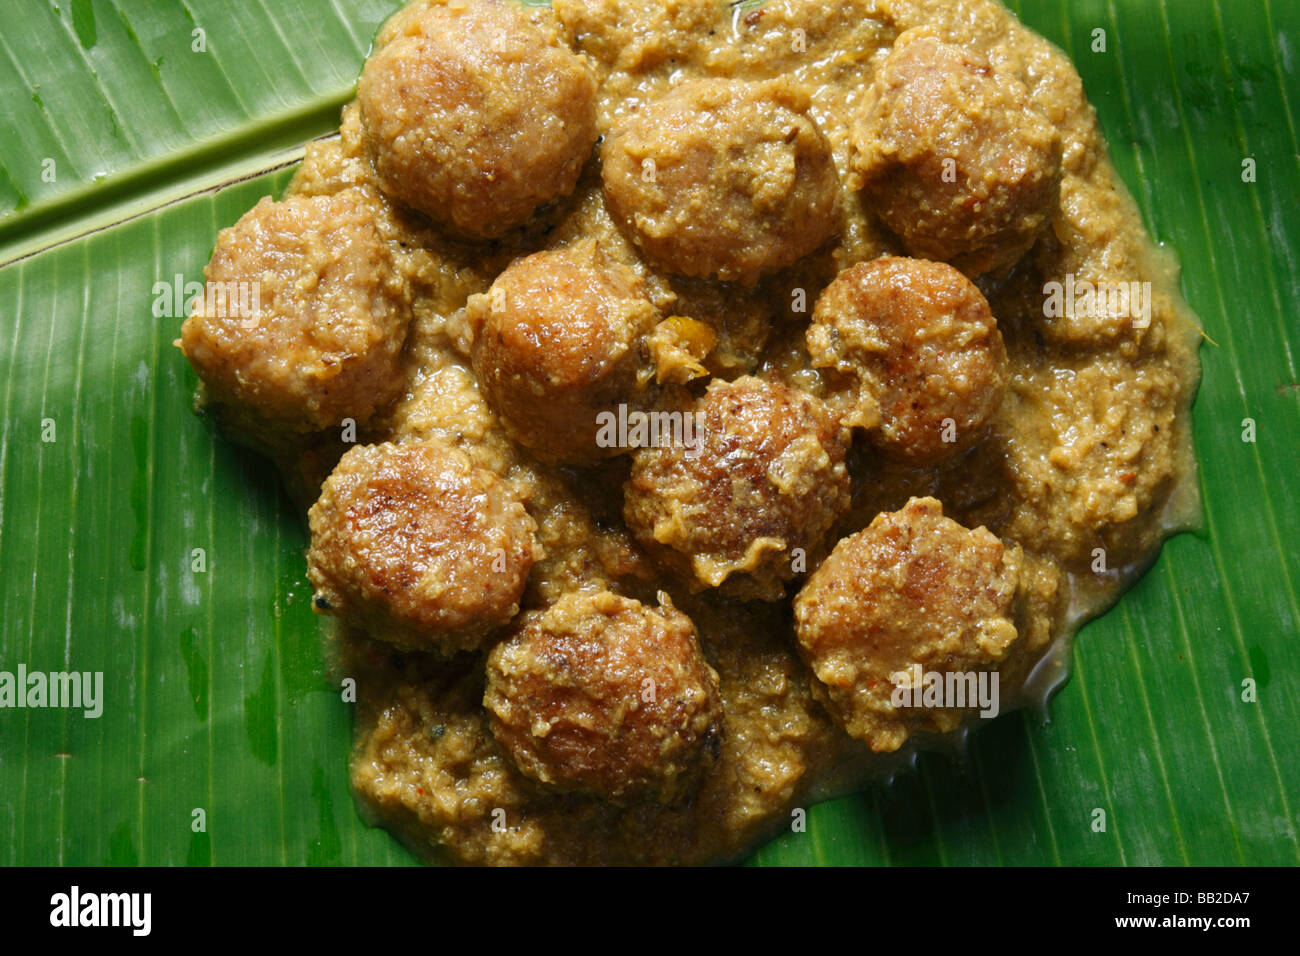 Chanar dalna is a popular gram and potato based dish from